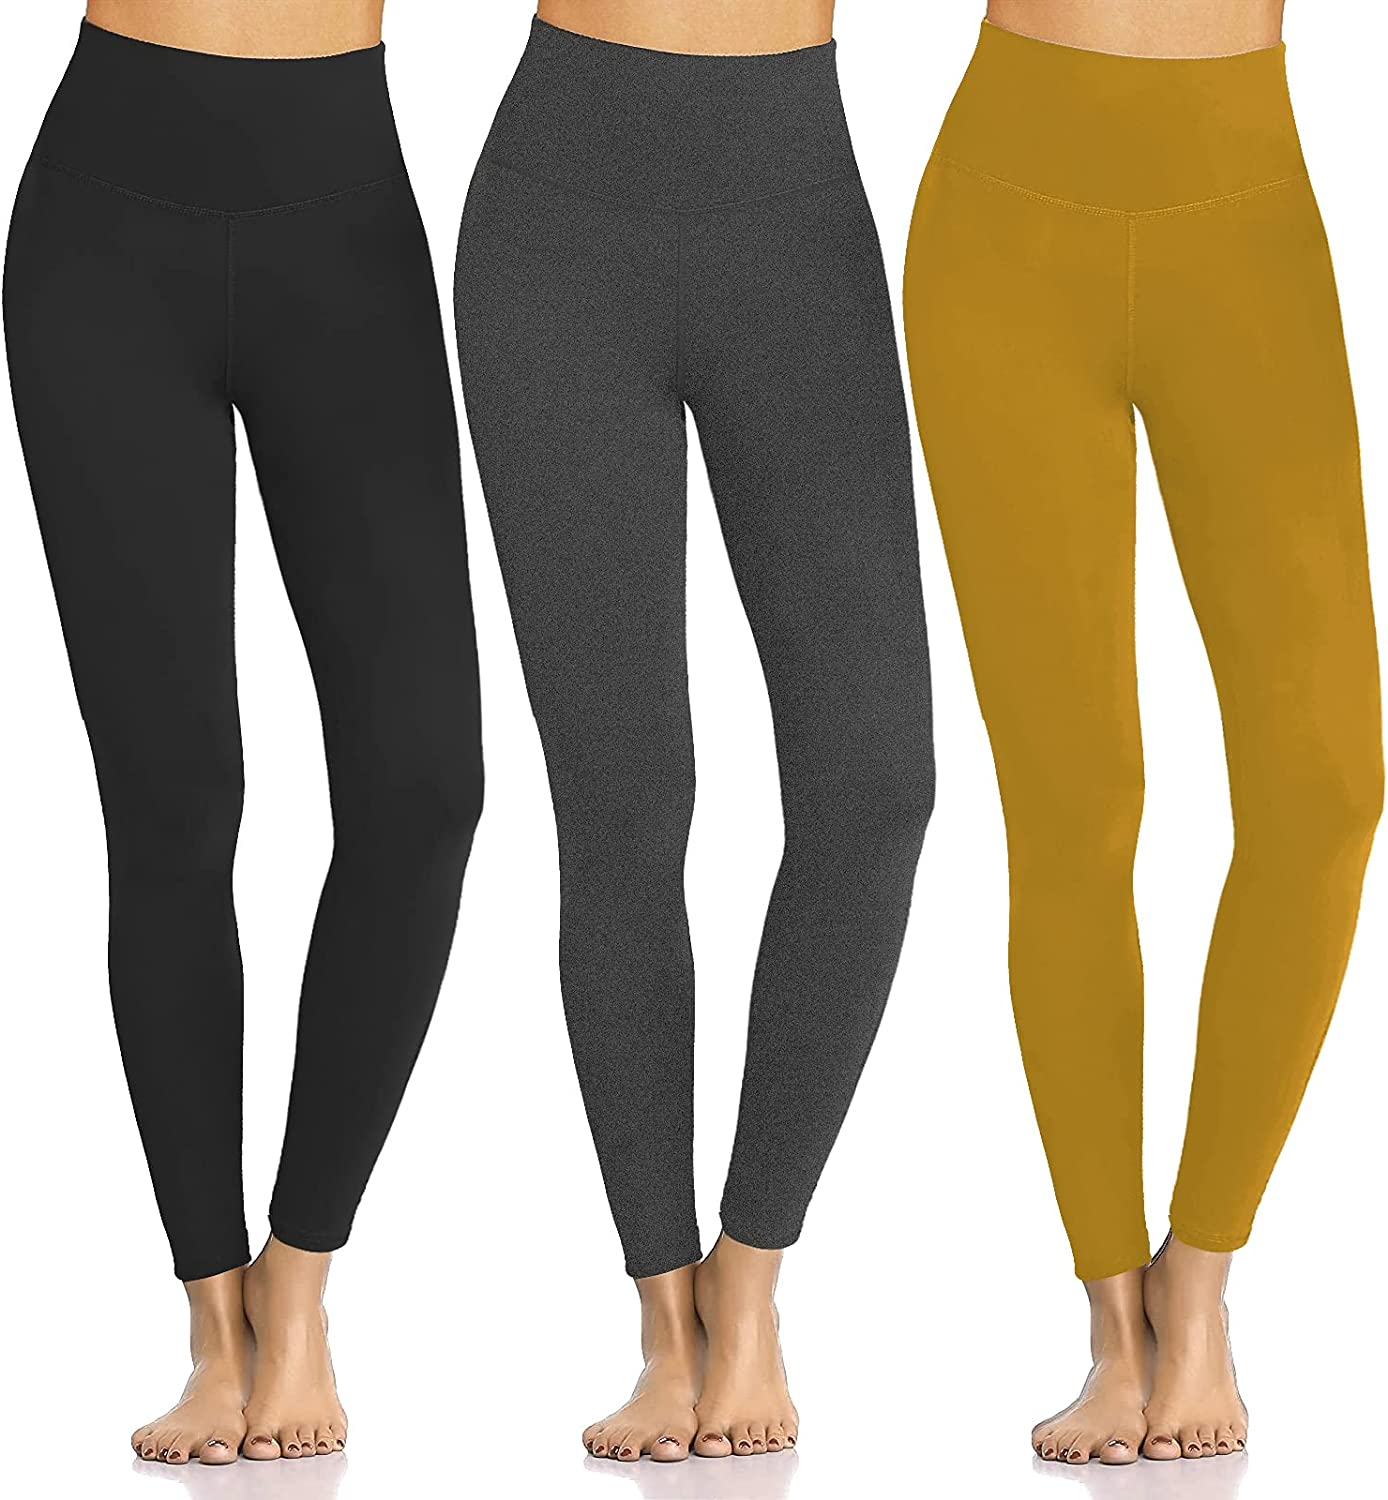 Women's Buttery Soft Leggings No See-Through quality assurance Tummy Waist Co Direct sale of manufacturer High